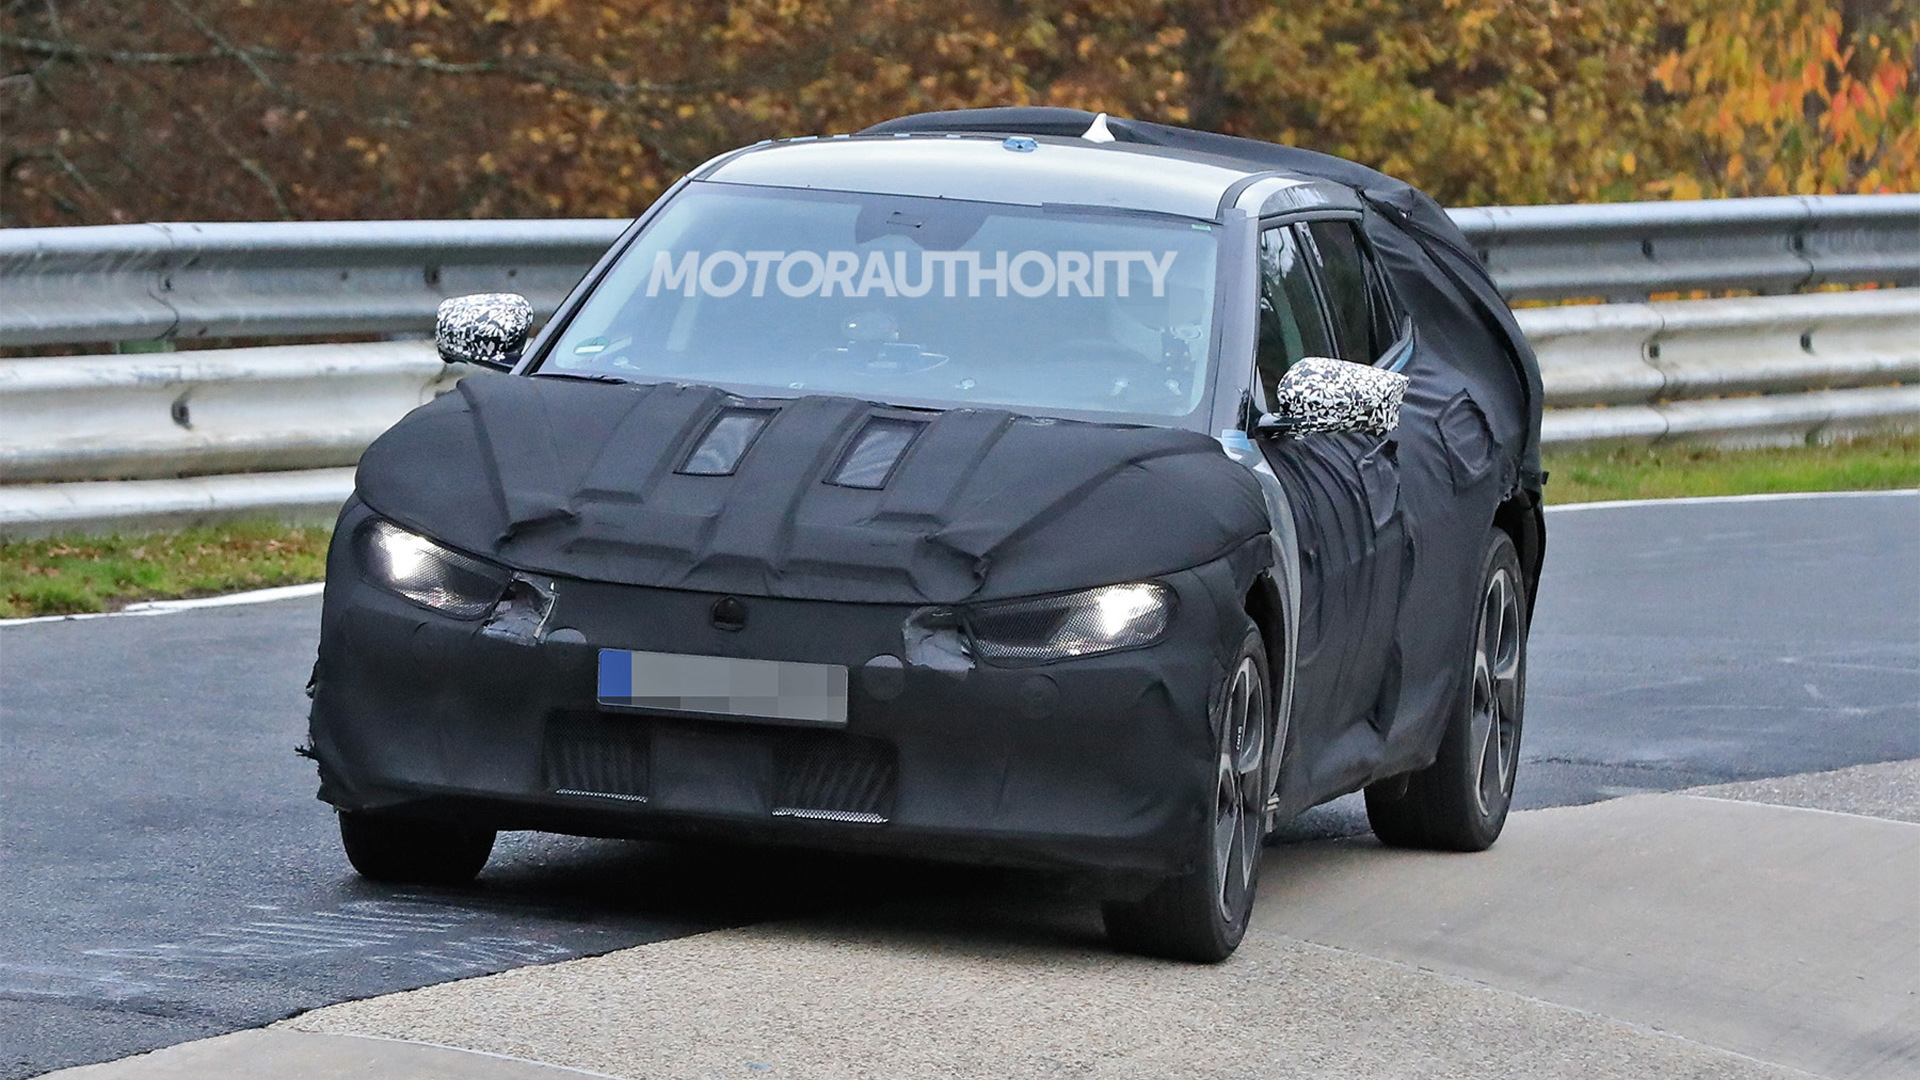 2022 Kia CV electric vehicle spy shots - Photo credit: S. Baldauf/SB-Medien